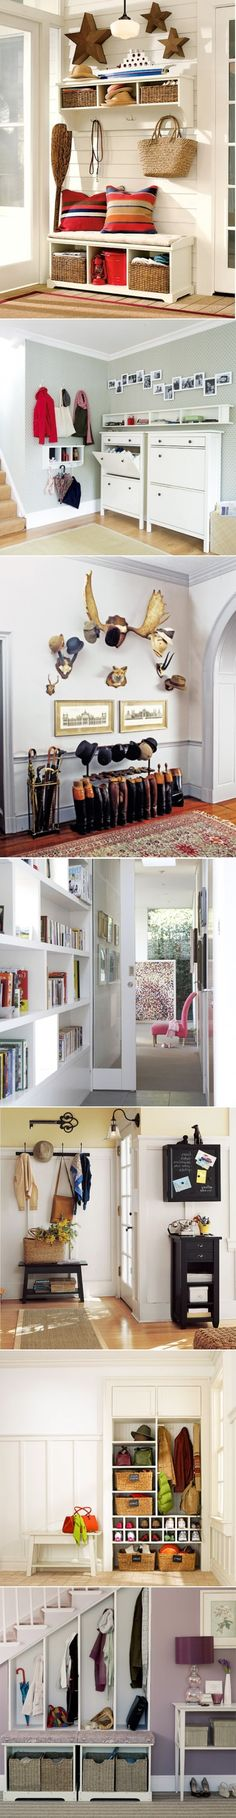 DIY Mudroom And Hallway Storage Ideas